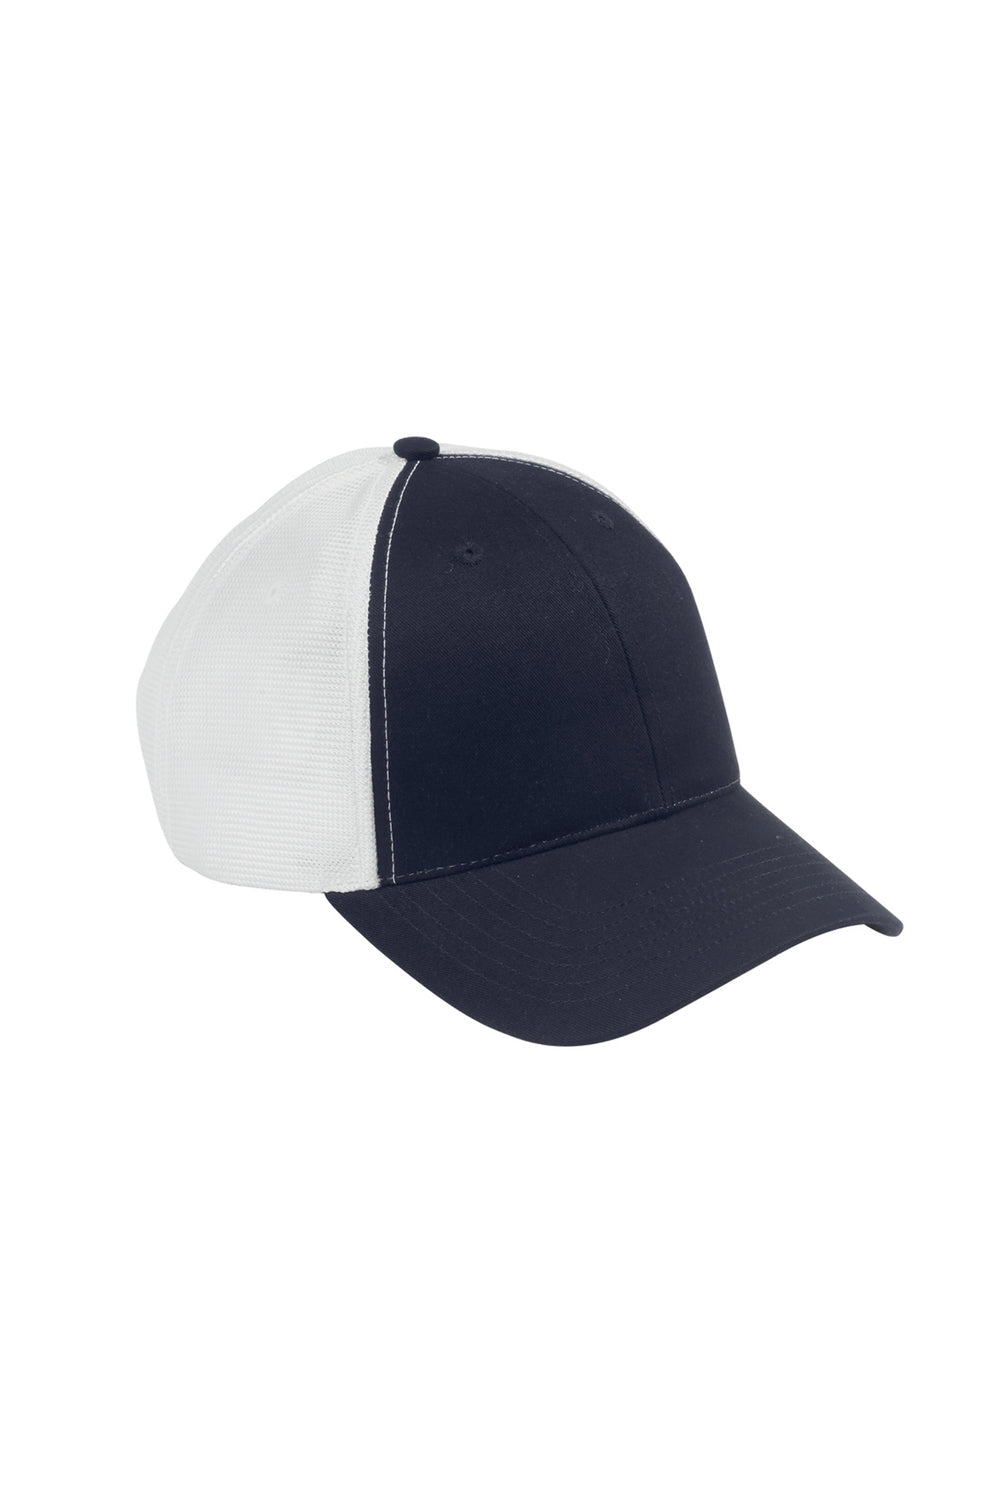 Big Accessories OSTM Mens Old School Adjustable Hat Navy Blue/White Front